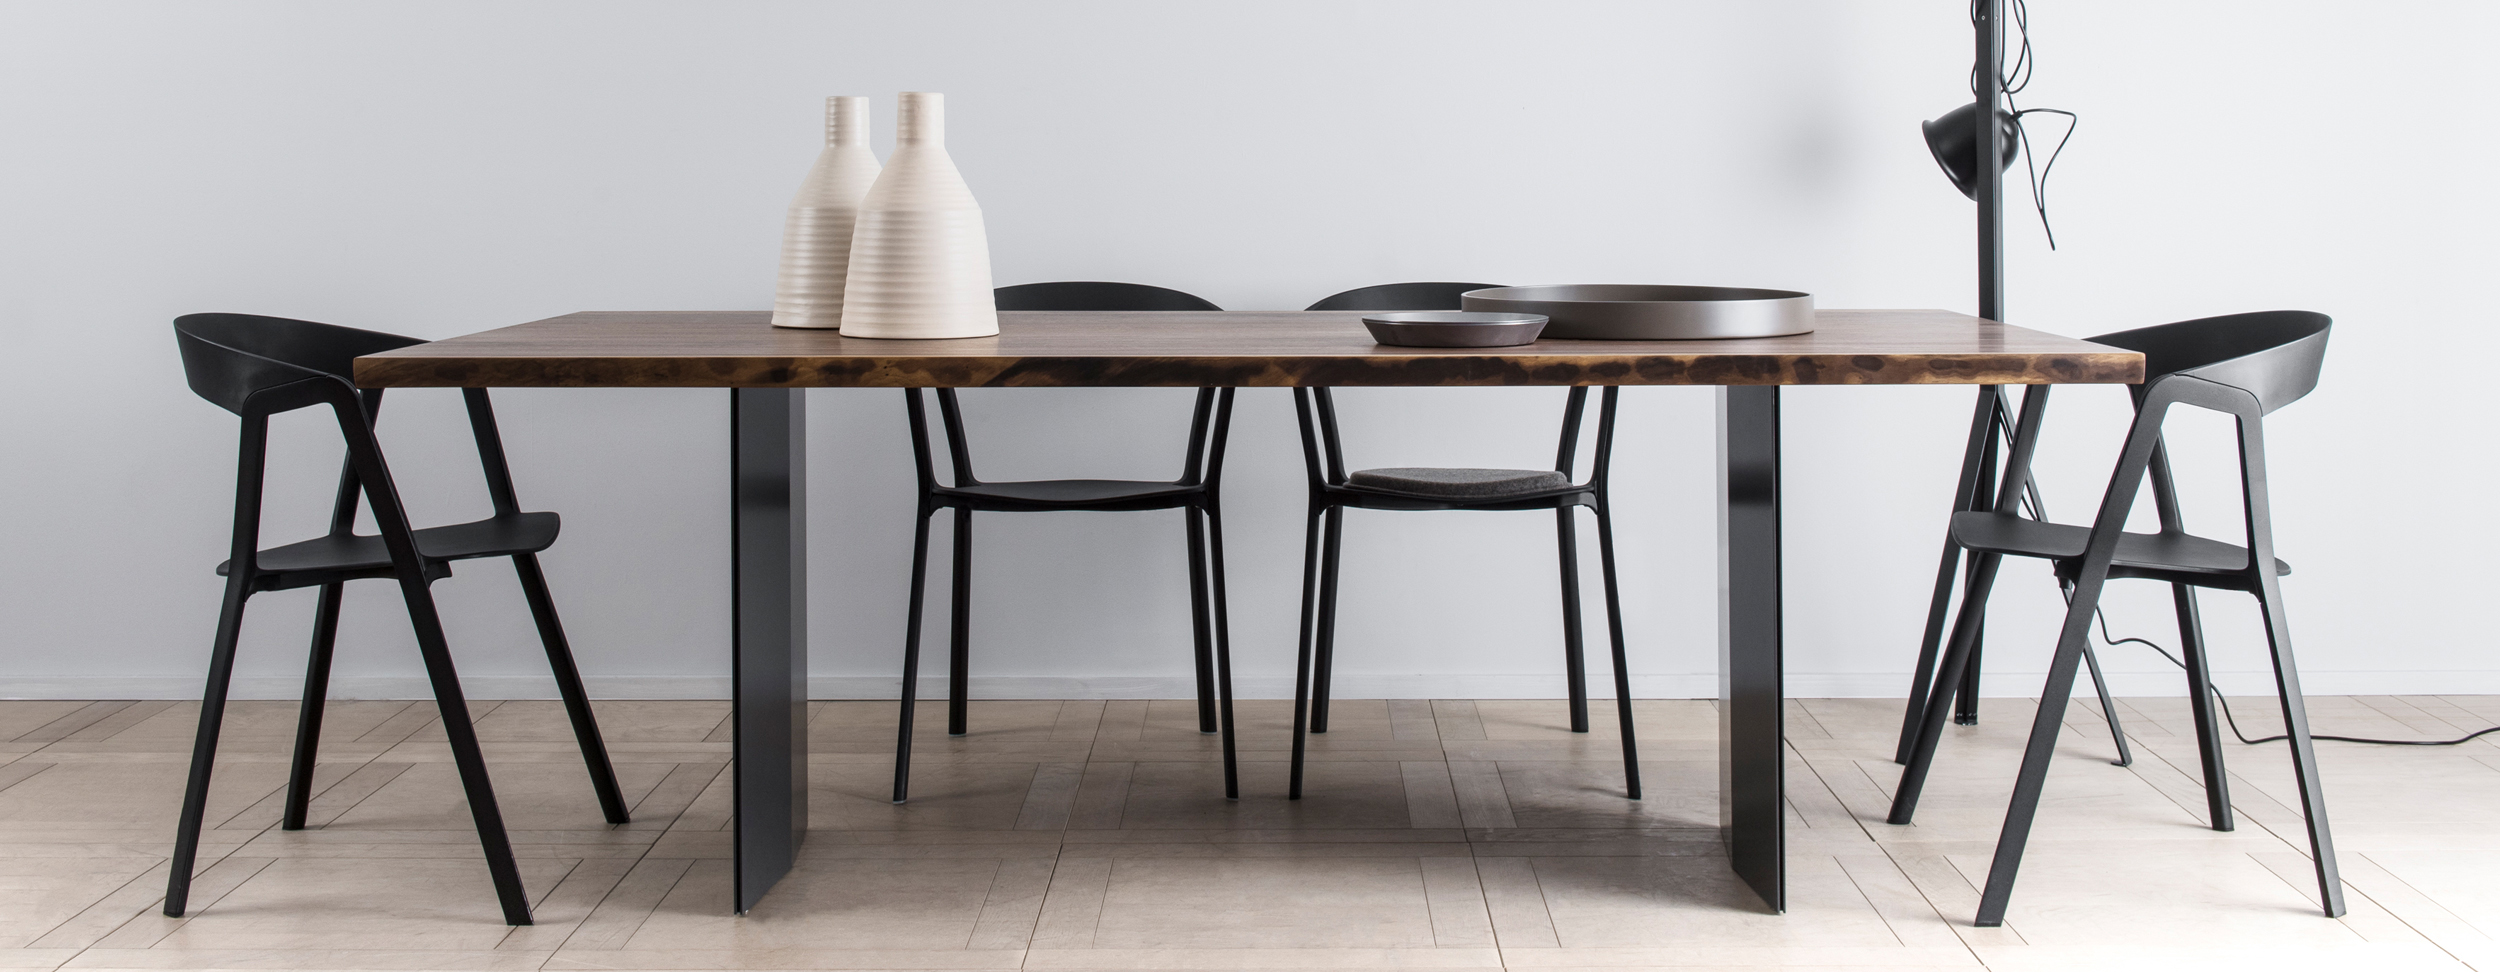 Designer Dining Tables Sydney Amp Melbourne Fanuli Furniture